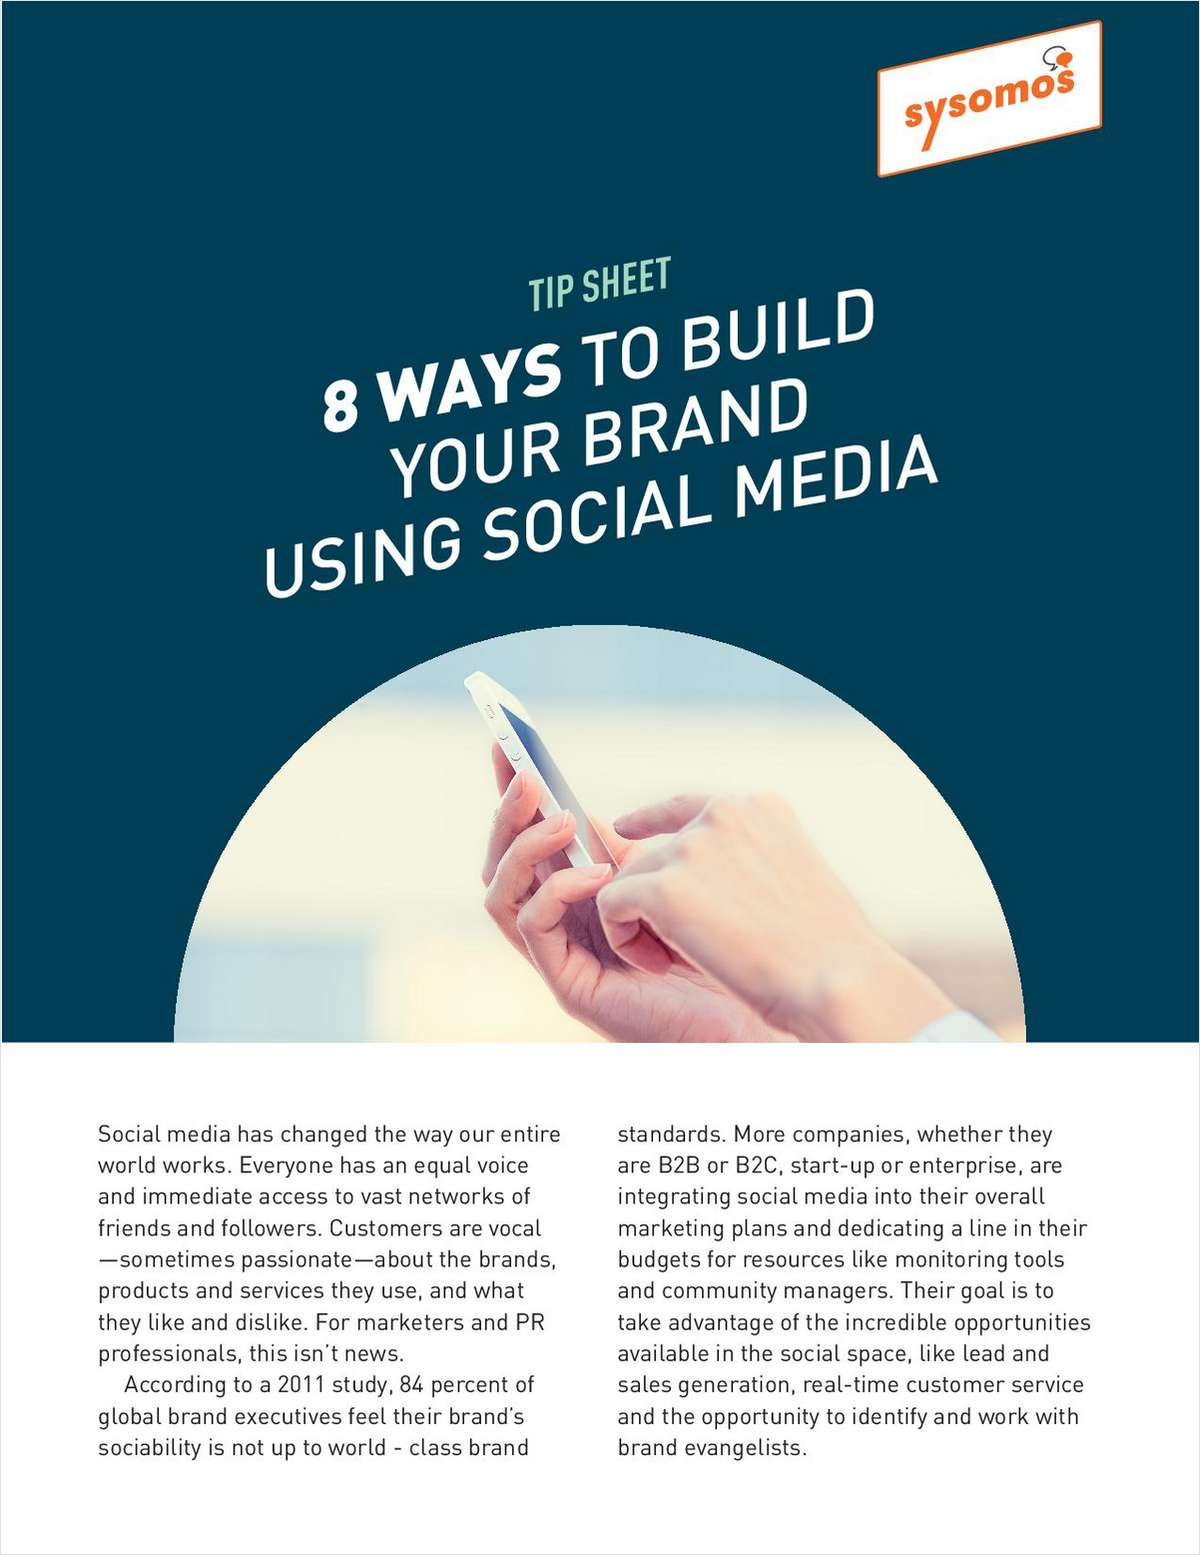 http://magz.tradepub.com/free-offer/8-ways-to-build-your-brand-using-social-media/w_syso06?sr=hicat&_t=hicat:1211